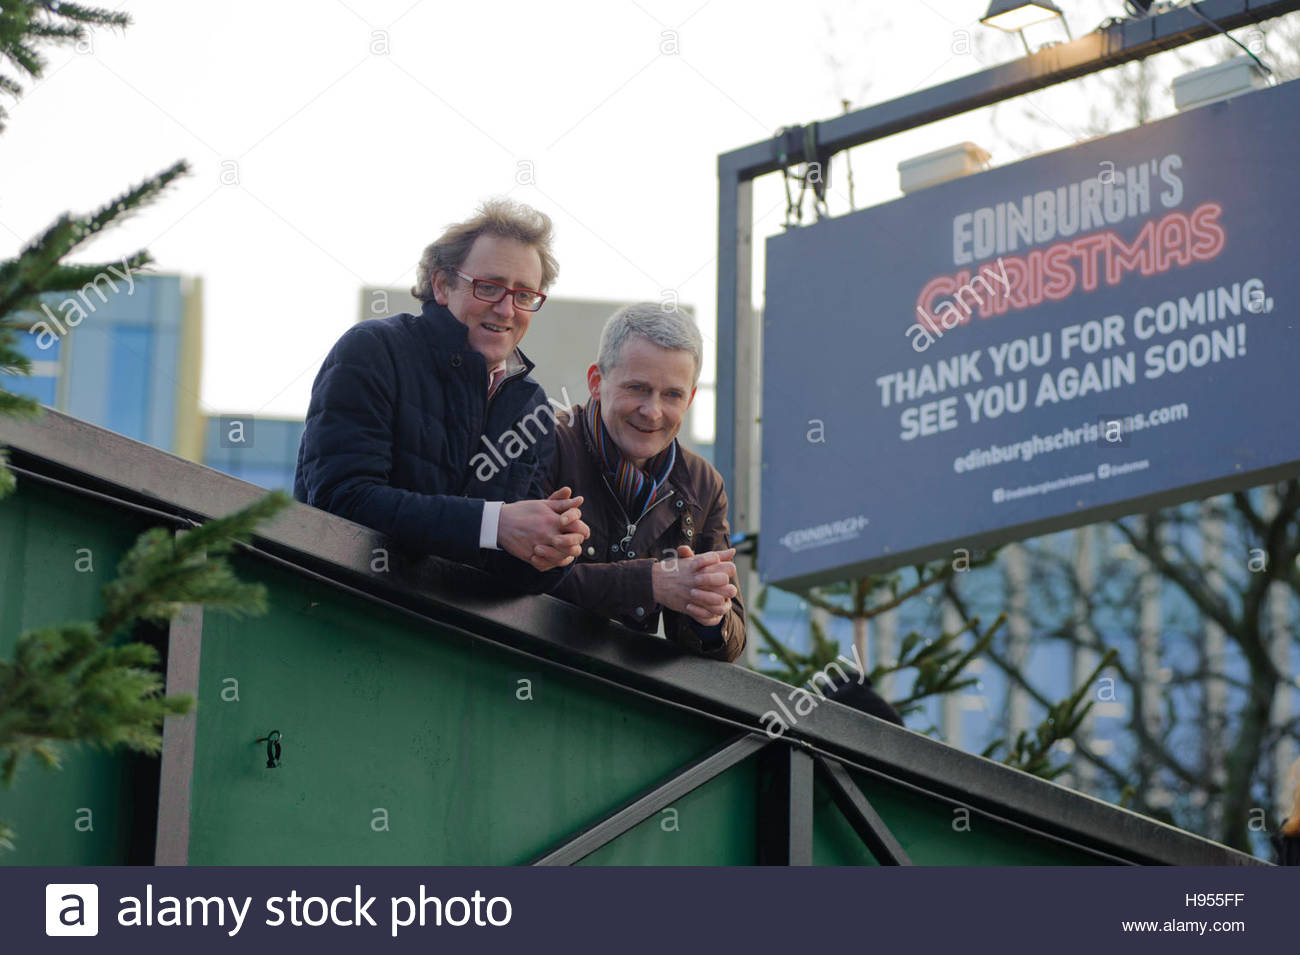 Edinburgh, UK. 18 November, 2016. Charlie Wood (l) Director of Underbelly, promoters of Edinburgh's Christmas - Stock Image